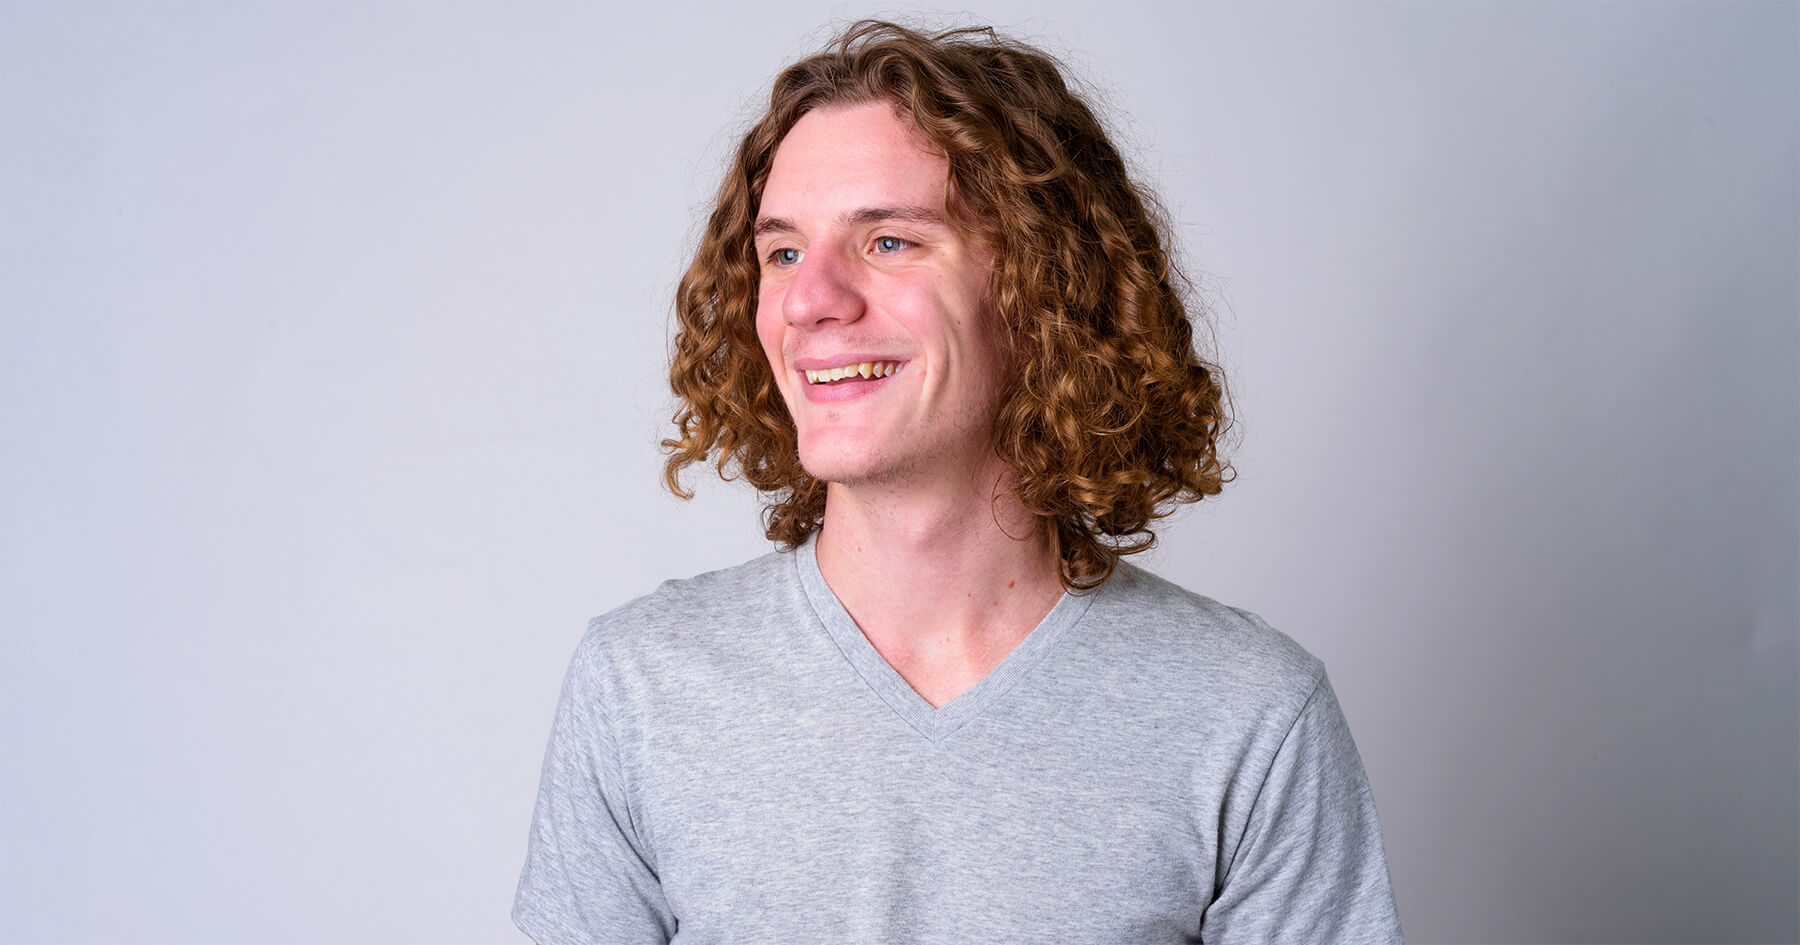 Long Curly Hair And The War On Frizz 4 Rules For Men With Curls